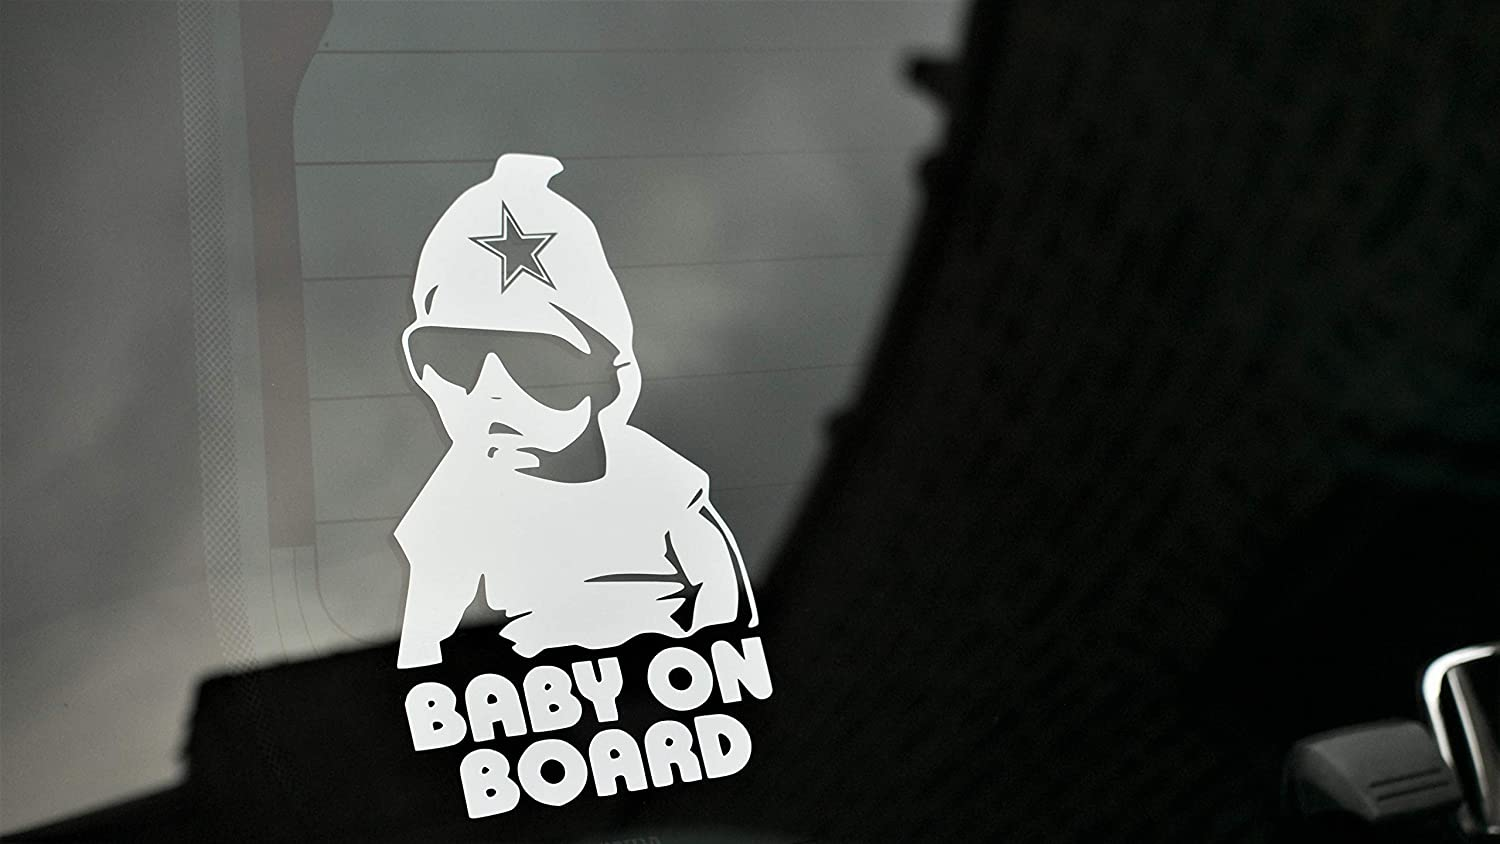 AVP BABY ON BOARD Dallas Cowboy Edition 7.5 H Premium Vinyl Decal Sticker in White Promotes Safety and Road Awareness